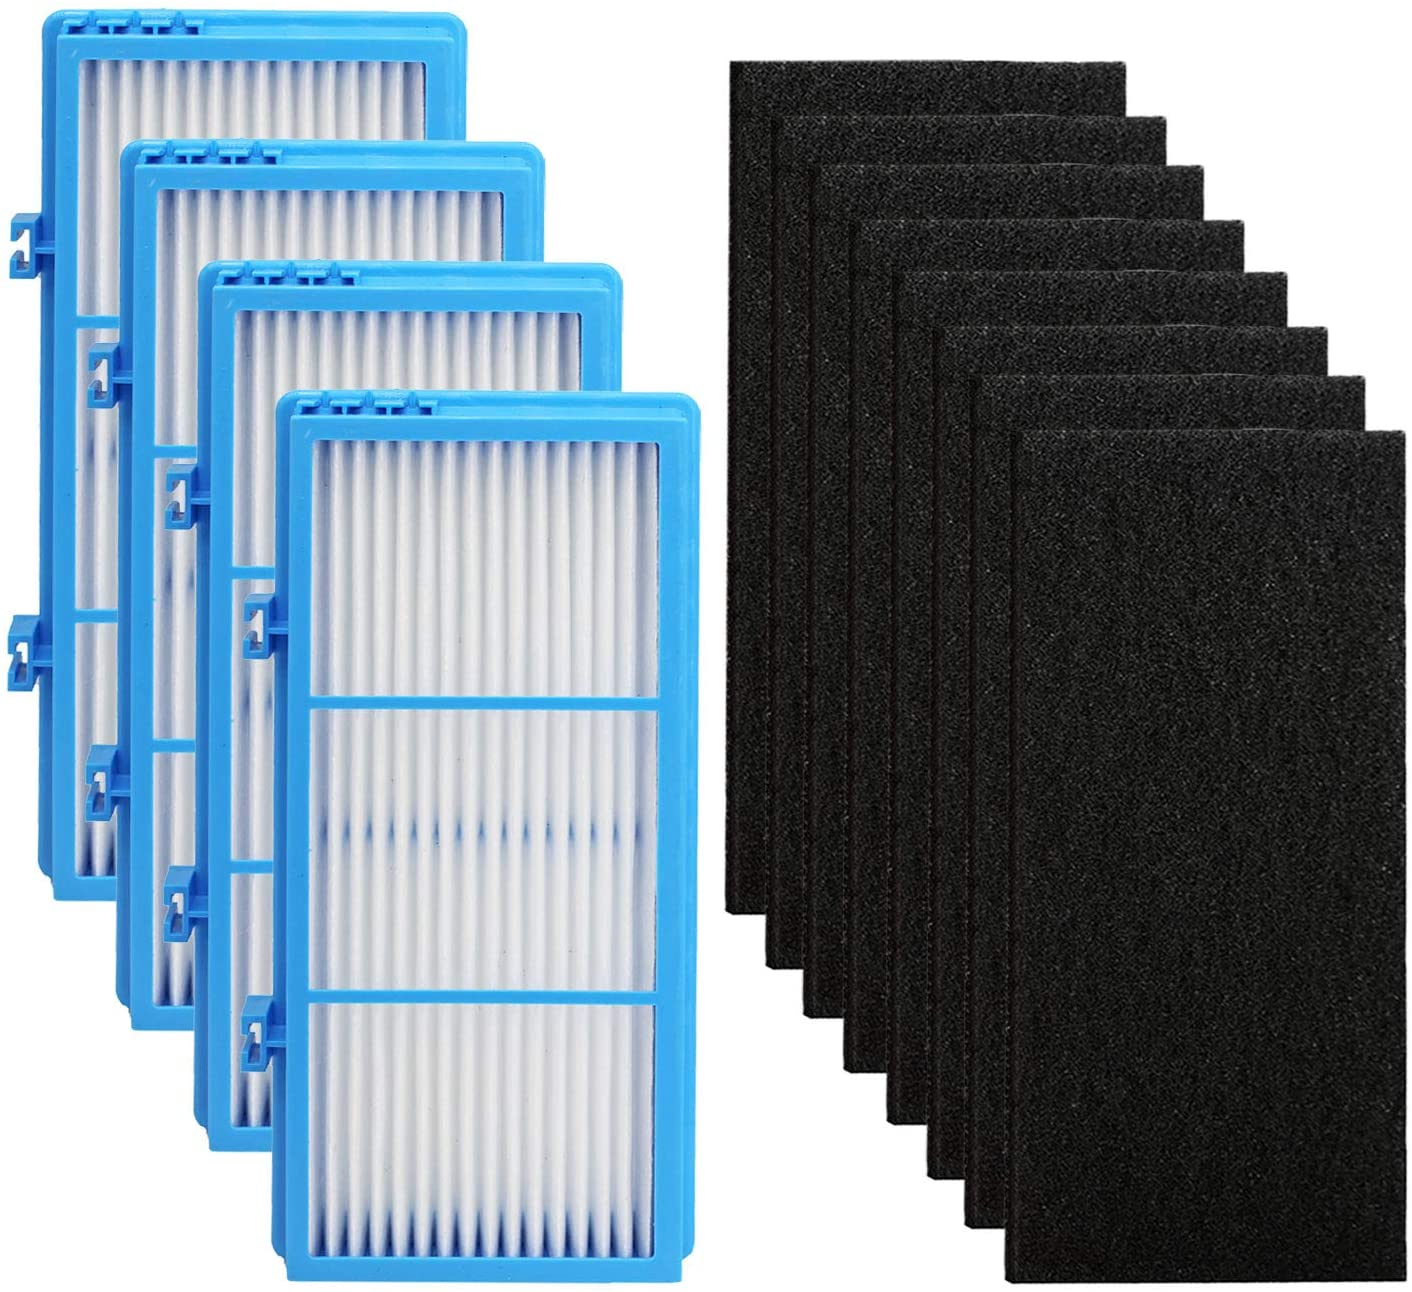 IOYIJOI True Filter Replacement for Holmes Aer1 Series Total Air Filter, Replacement Parts # HAPF300AH-U4R, HAP242-NUC (4 HEPA True Filter Replacement + 8 Booster Pre Filter)